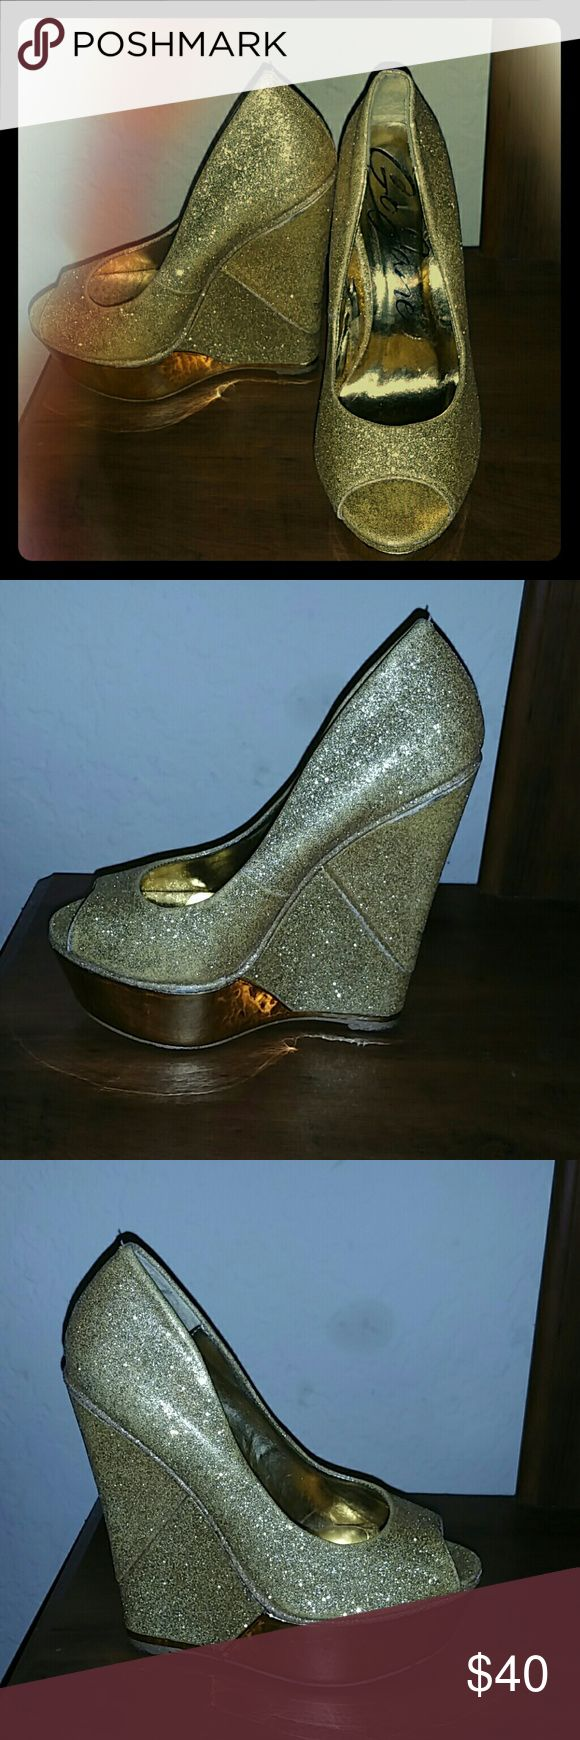 Gold Wedge Shoes Yellow Gold Glitters go Jane Shoes Wedges